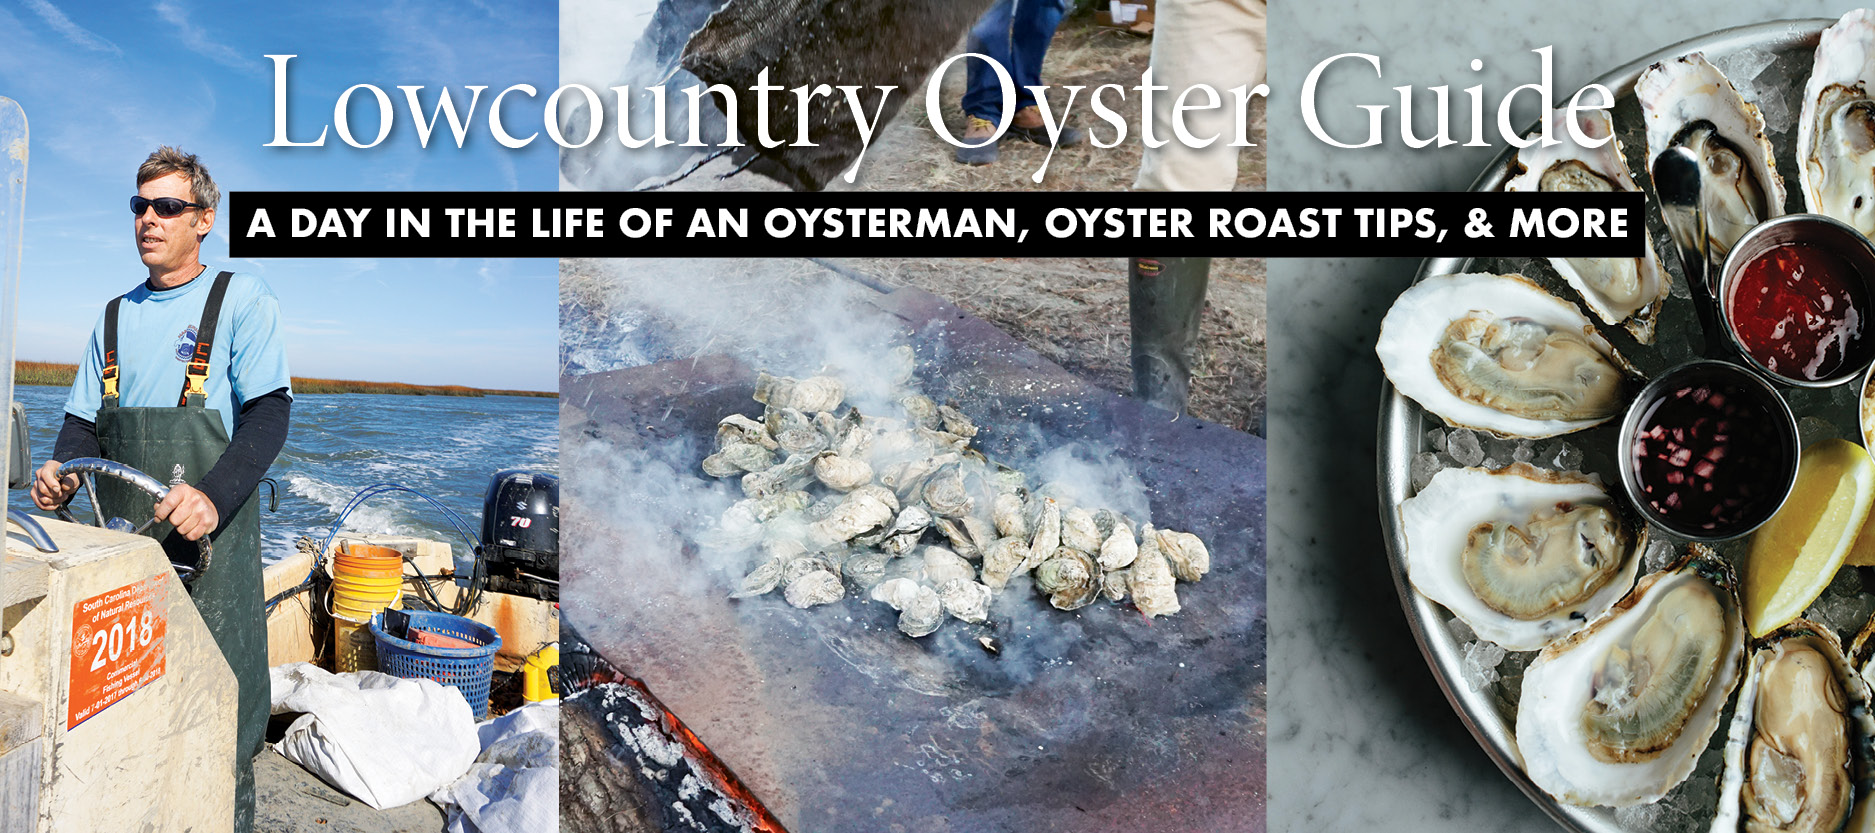 Lowcountry Oyster Guide